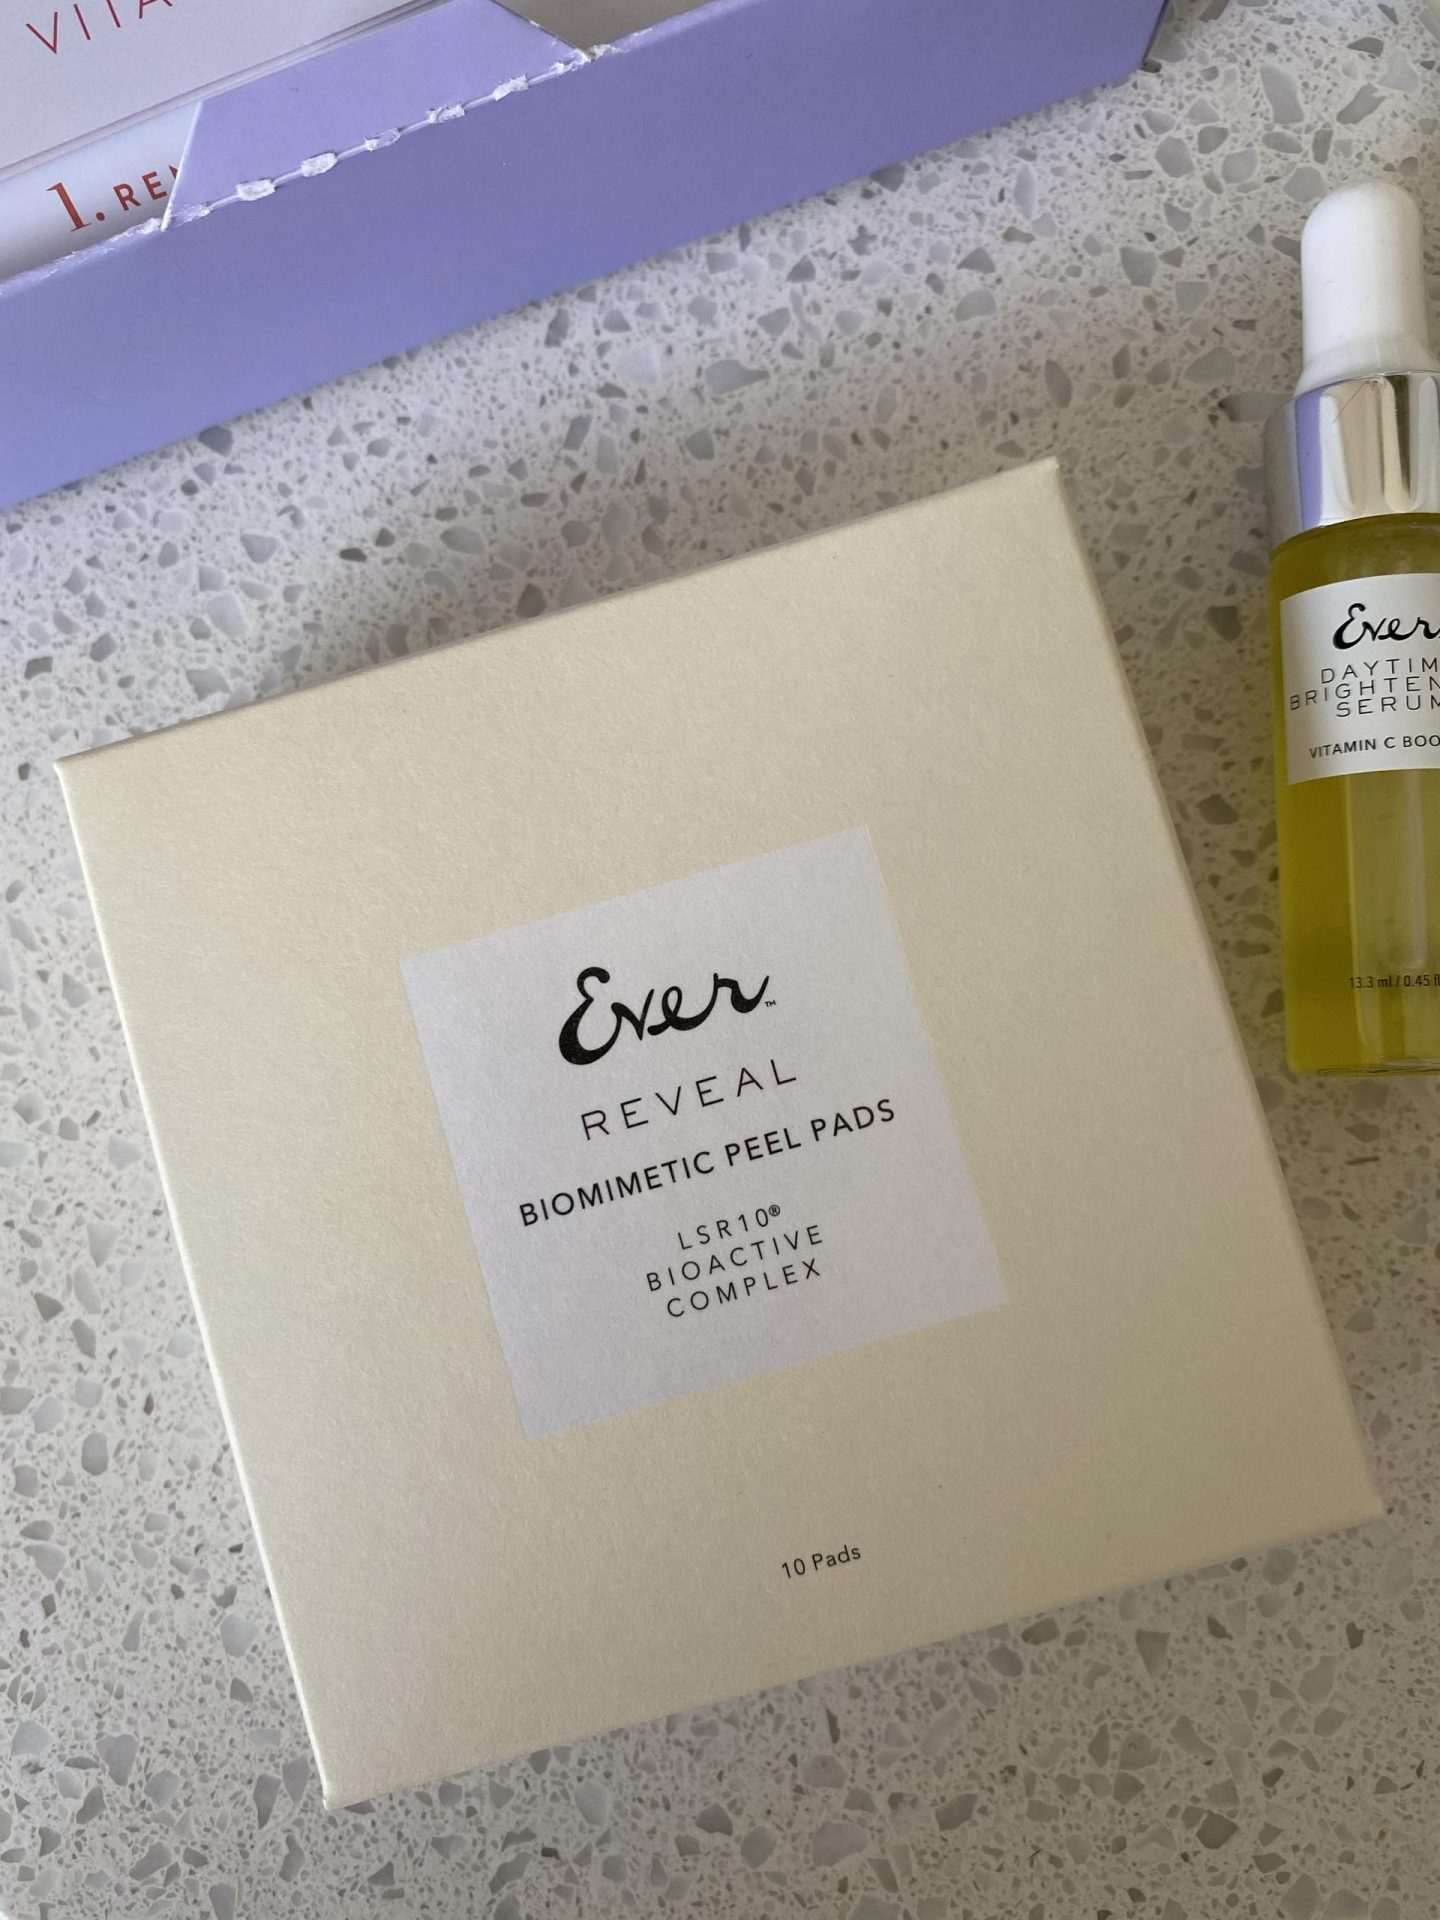 NC blogger Rebecca Lately is sharing her results with the Ever Vitamin C Glow Facial set. This trial set is amazing!